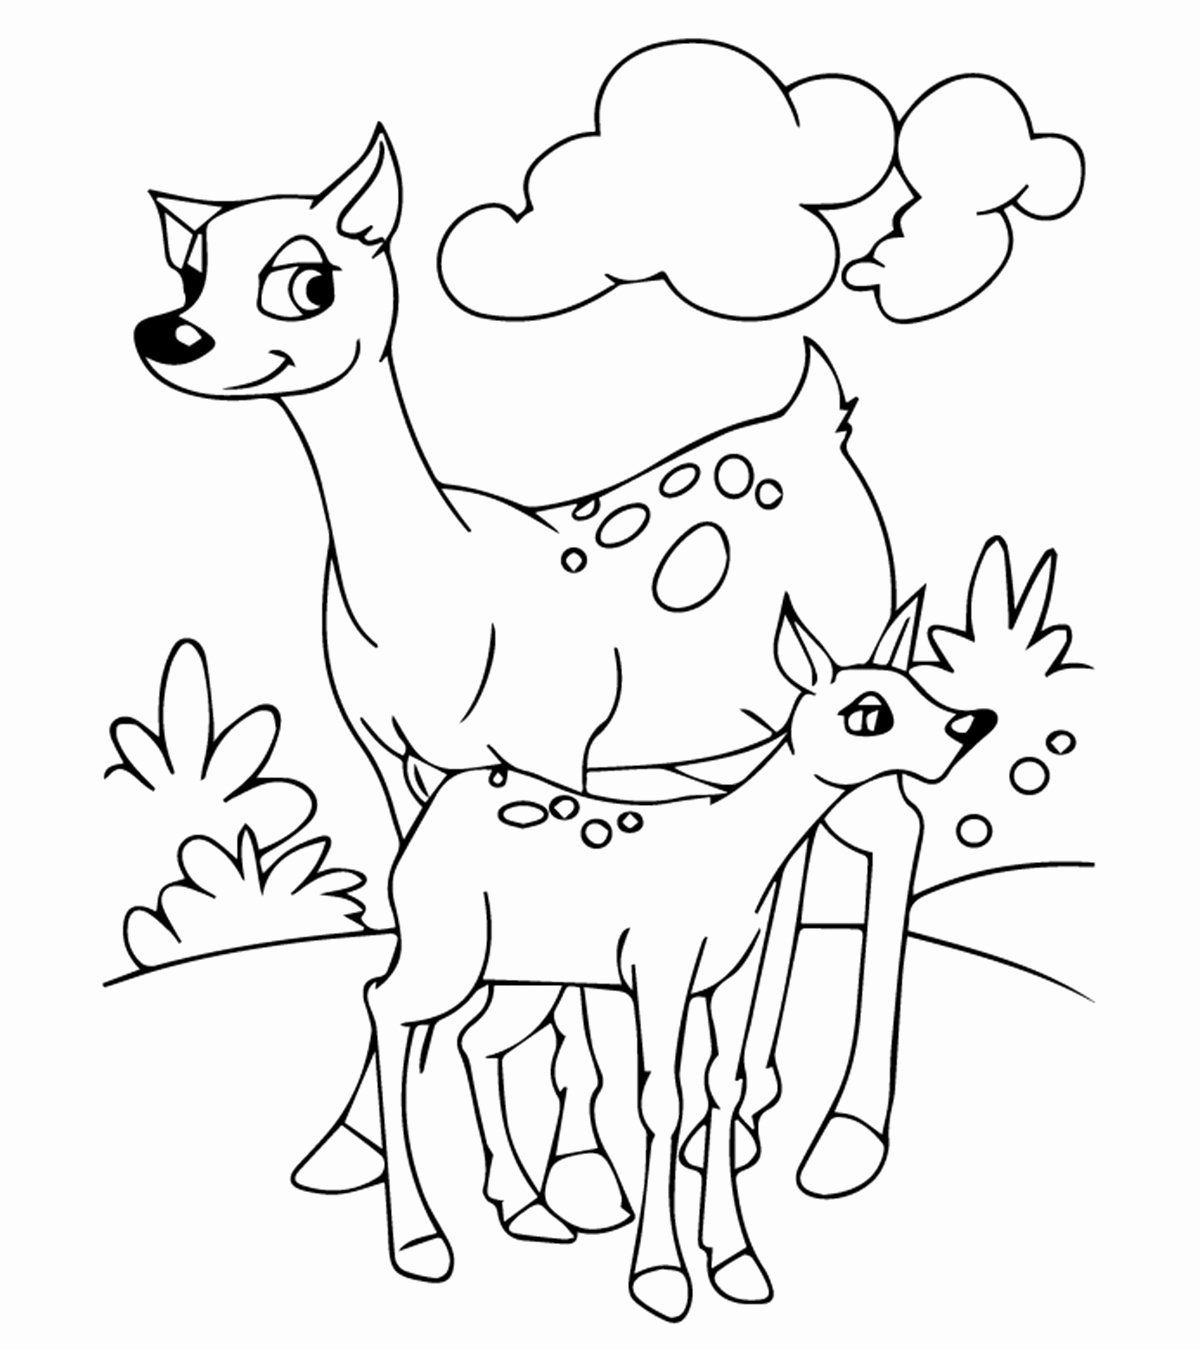 Coloring Page Of Animals In 2020 With Images Lion Coloring